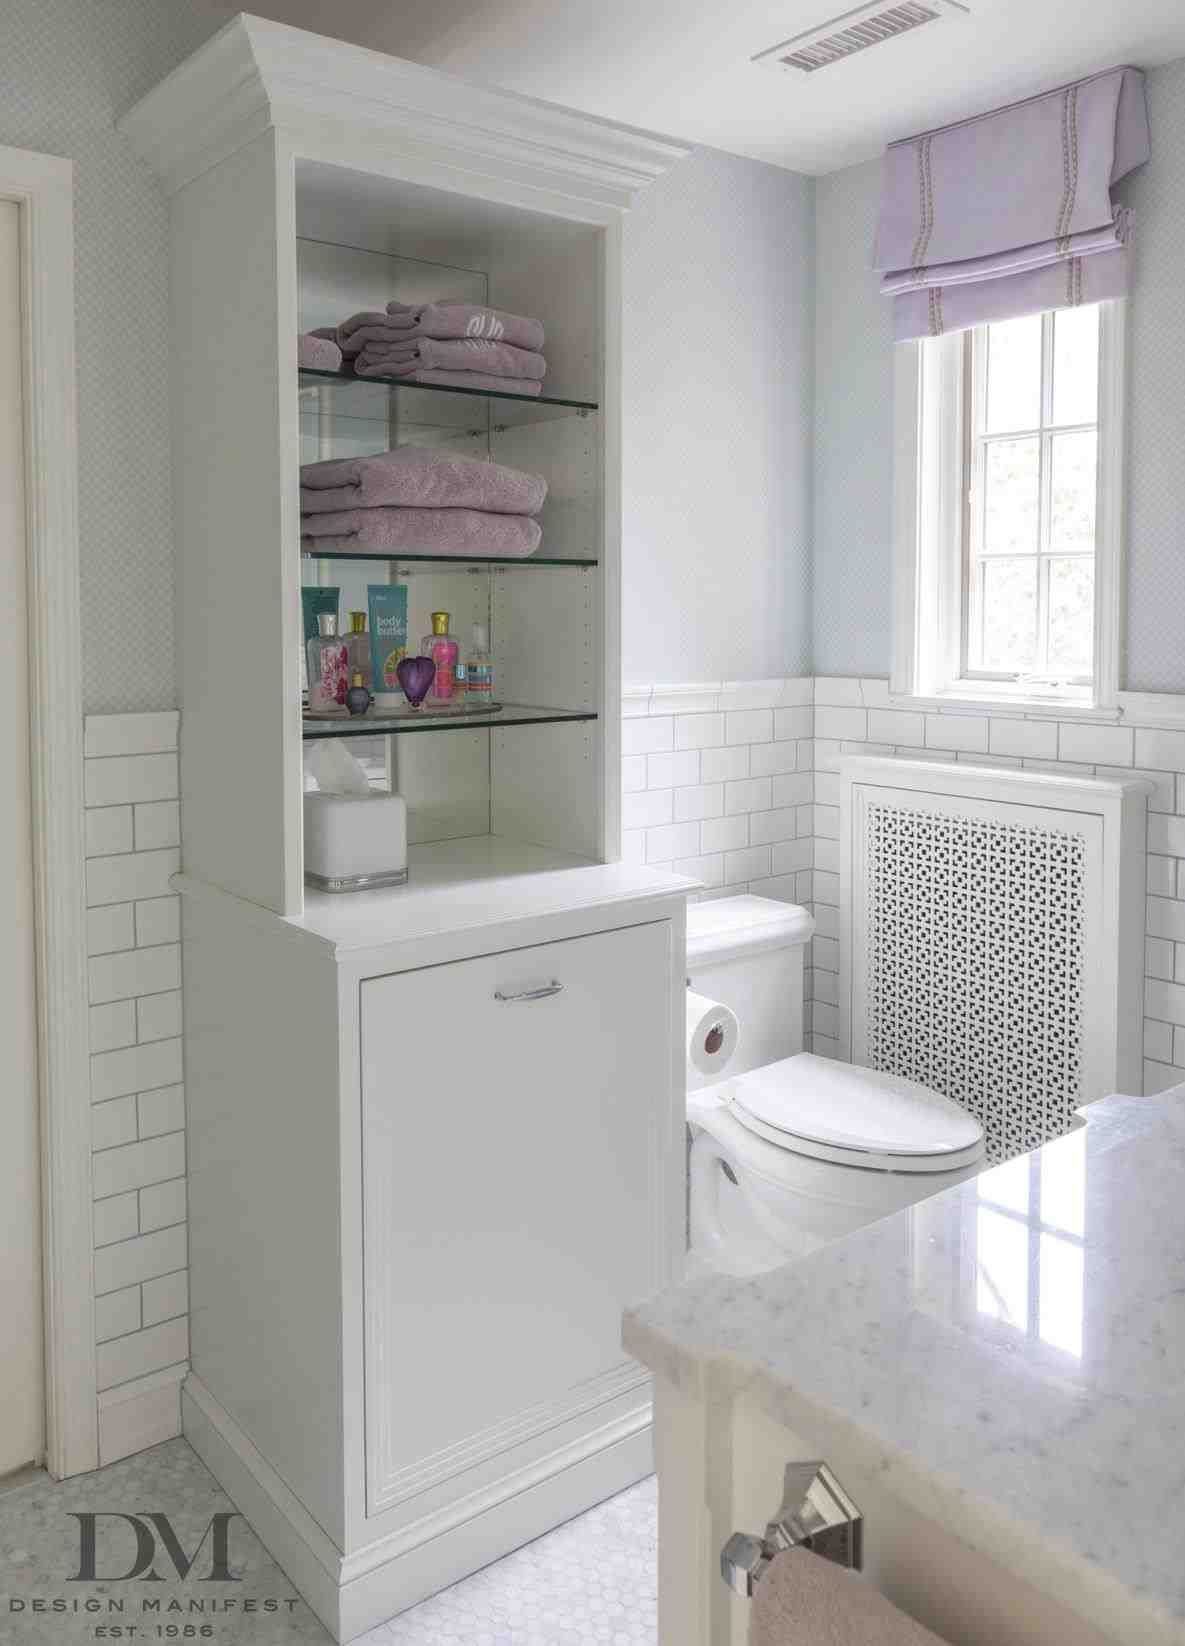 This Glass Shelves Above Toilet Towel Storage Cabinet Free Standing Bathroom Cabine Freestanding Bathroom Shelves Bathroom Corner Shelf Shelves Over Toilet